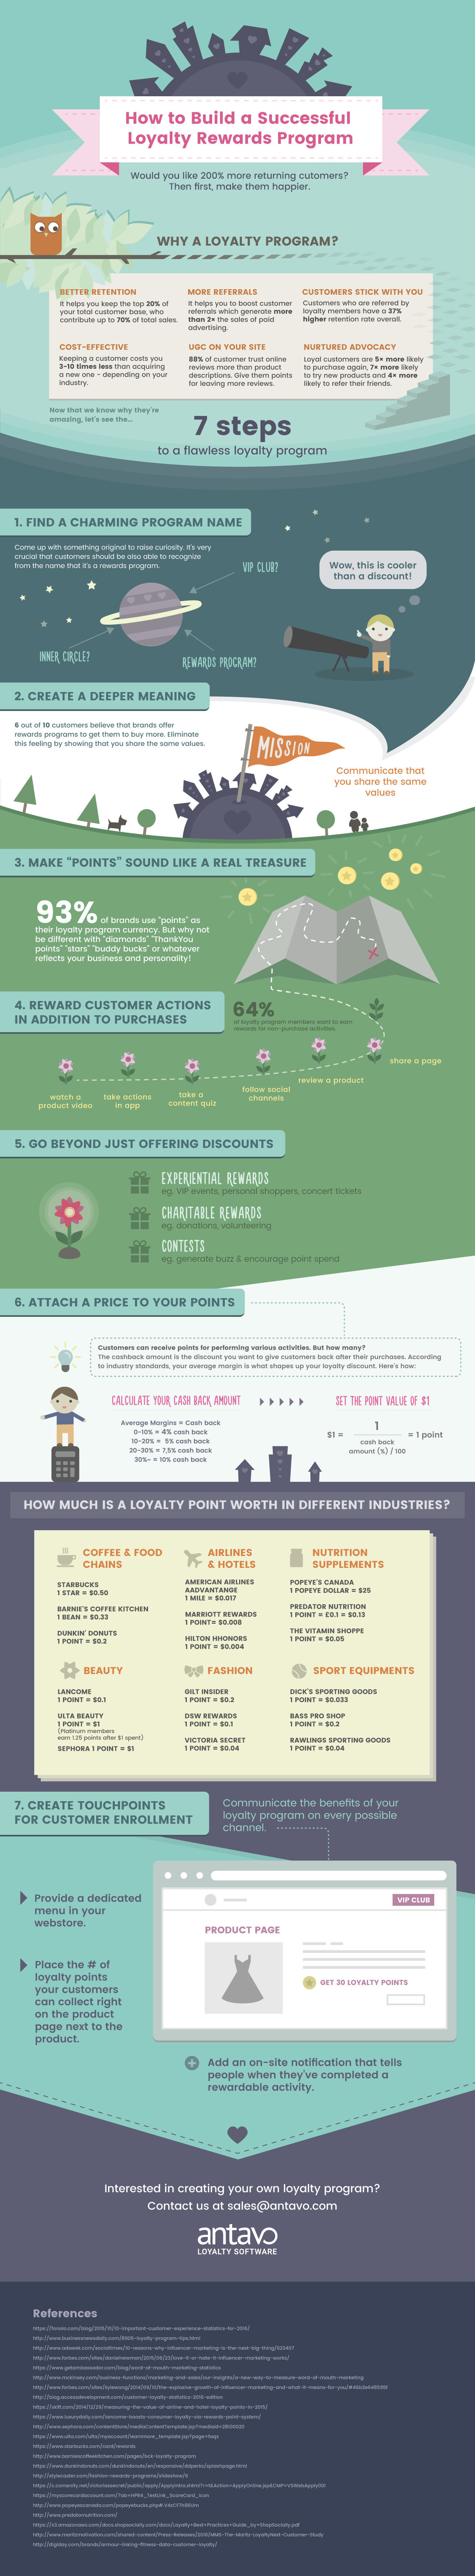 loyalty-rewards-program-infographic.png